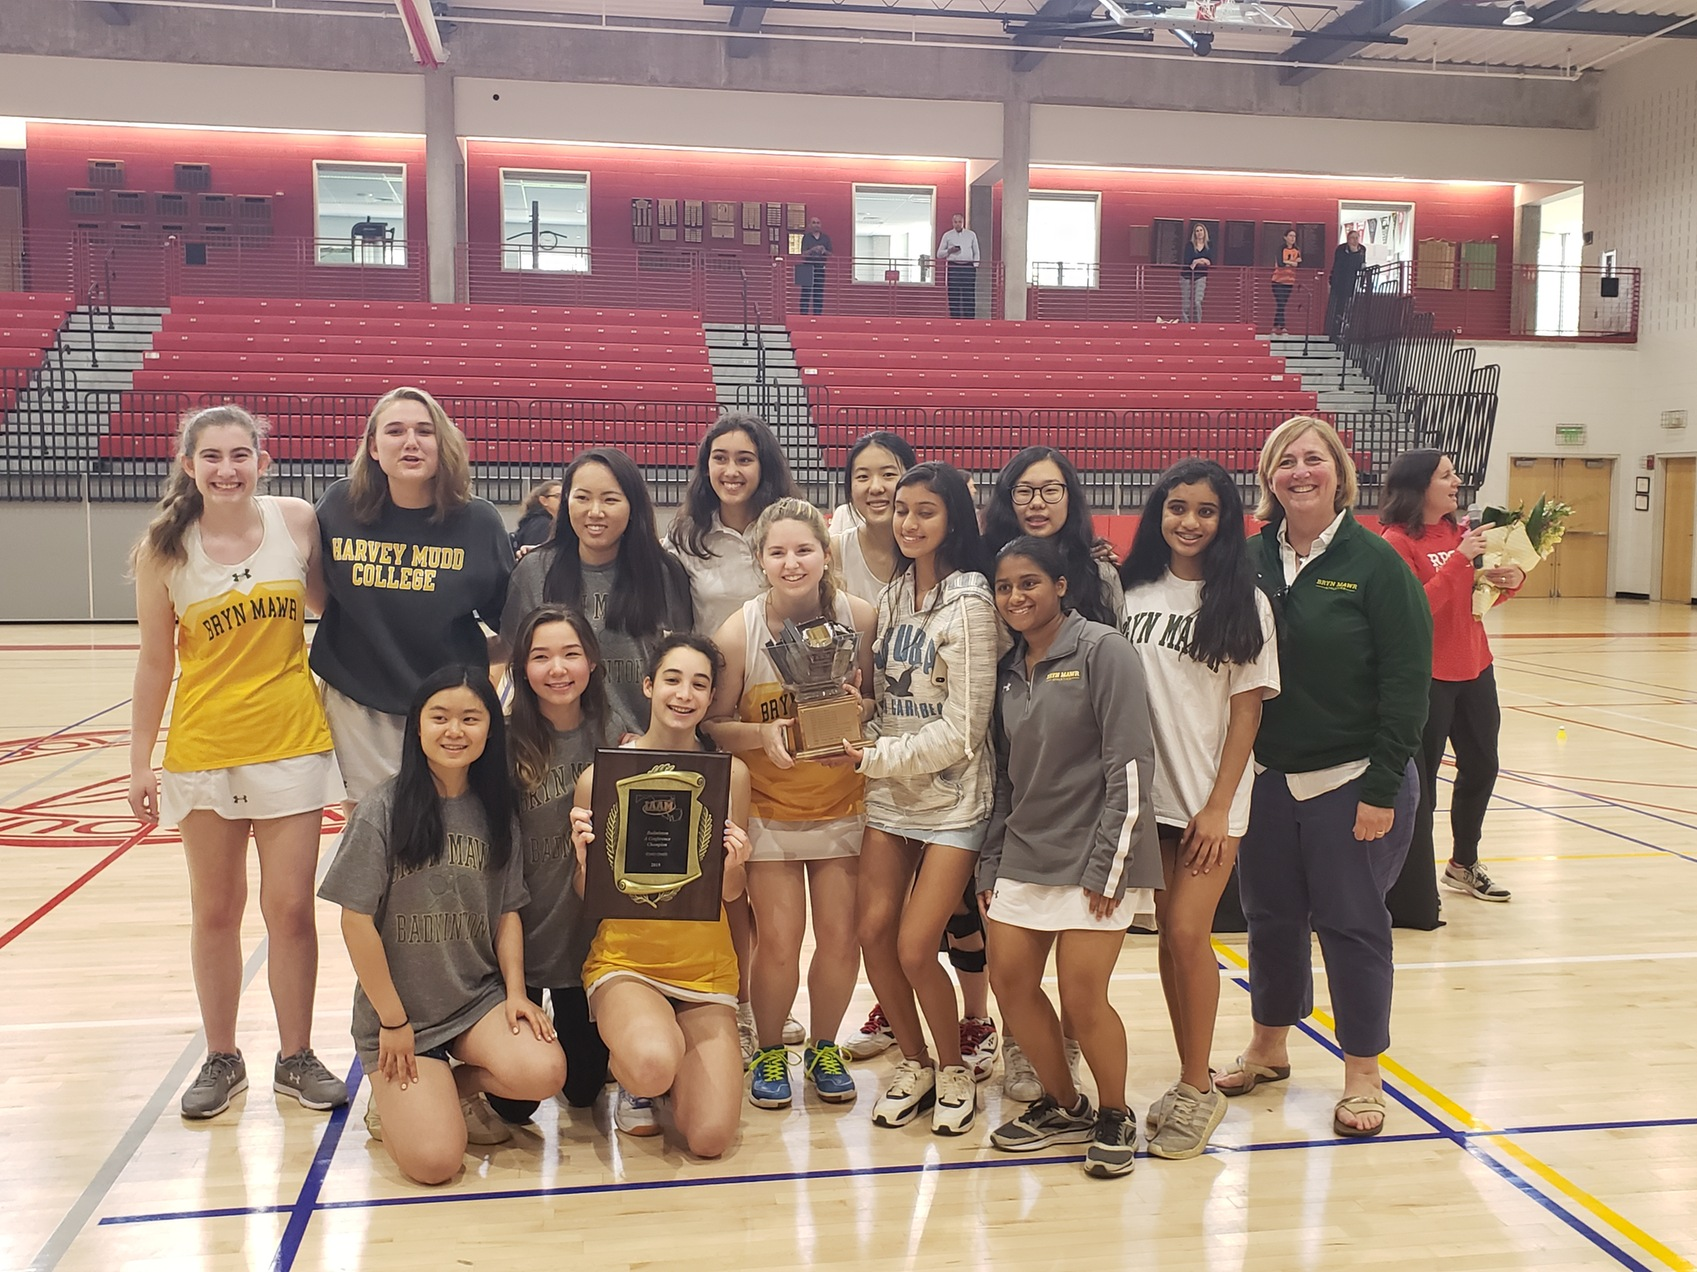 Bryn Mawr takes A Conference badminton title, St. Paul's nets B Conference crown